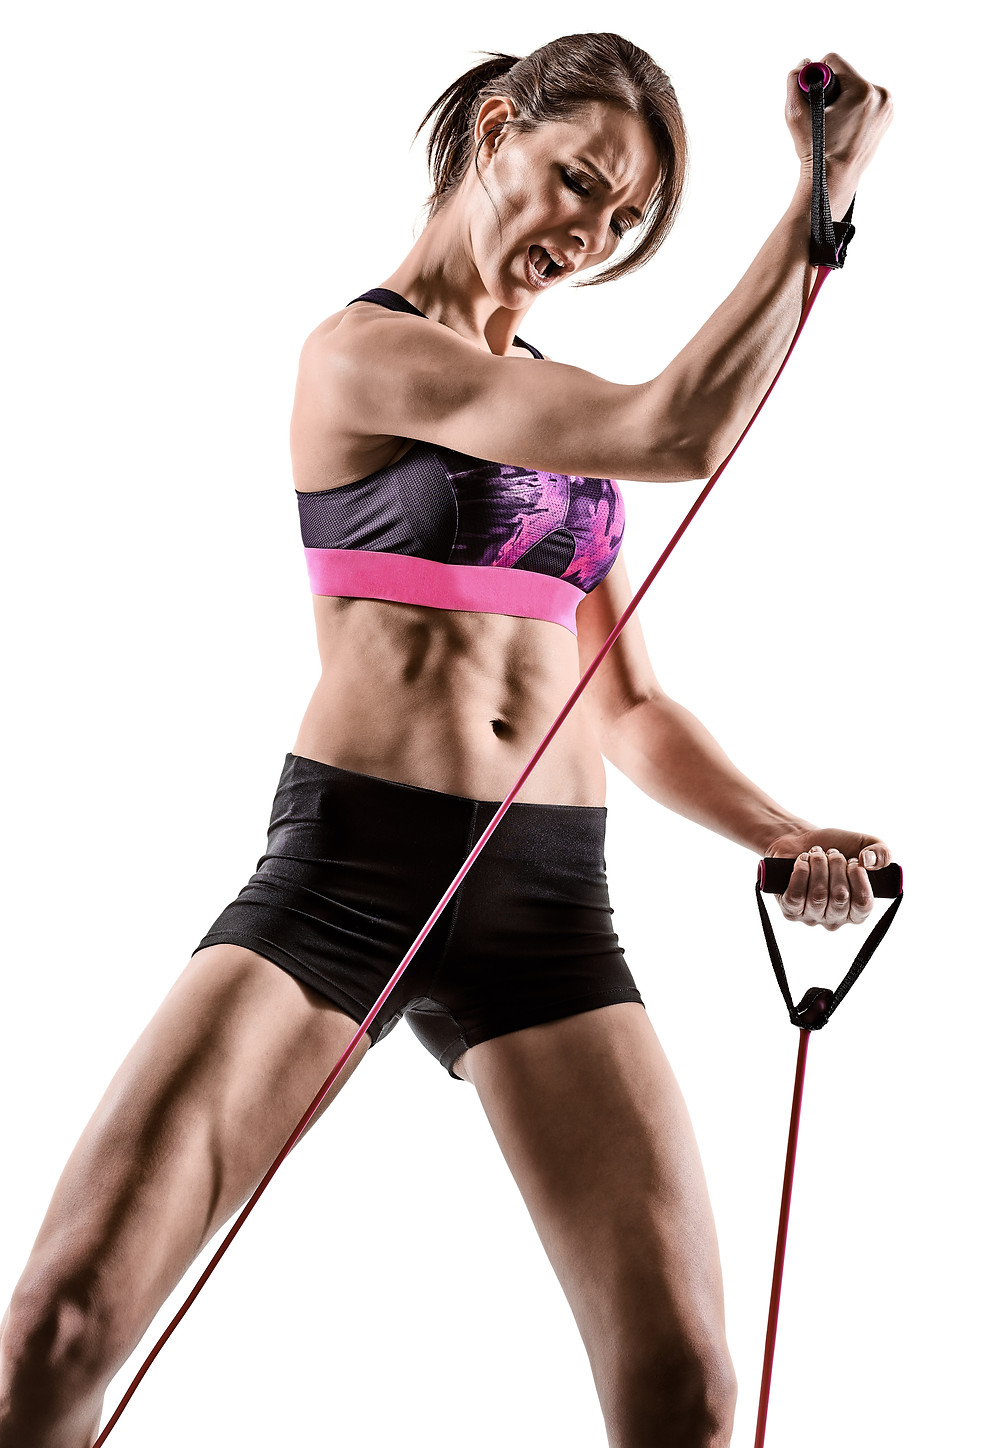 Seven  bands with different weights for intense exercise